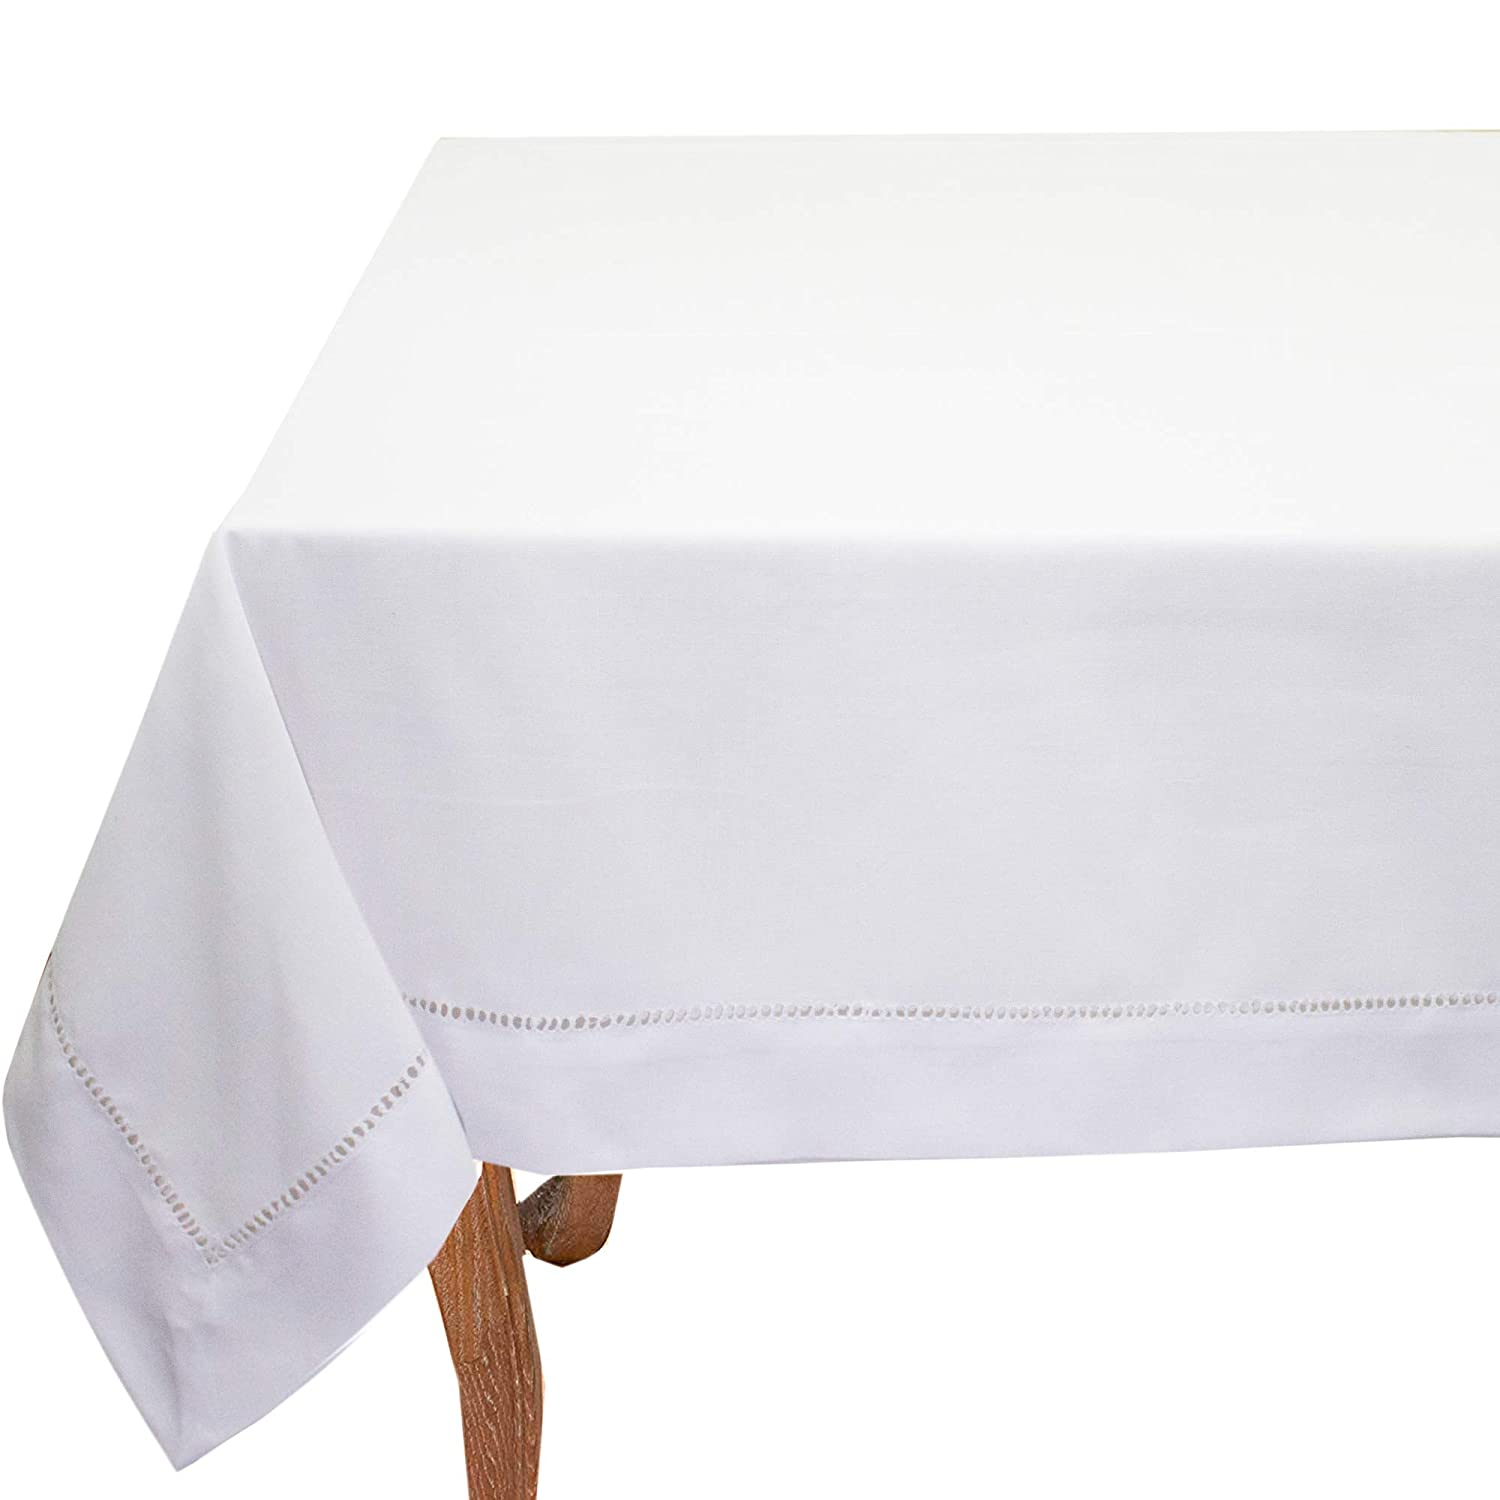 60 x 60 Inch Tablecloth Emerald Wedding Machine Washable Dinner Parties Fennco Styles Rochester Collection Classic Solid Color Hemstitched Border for Dining Table